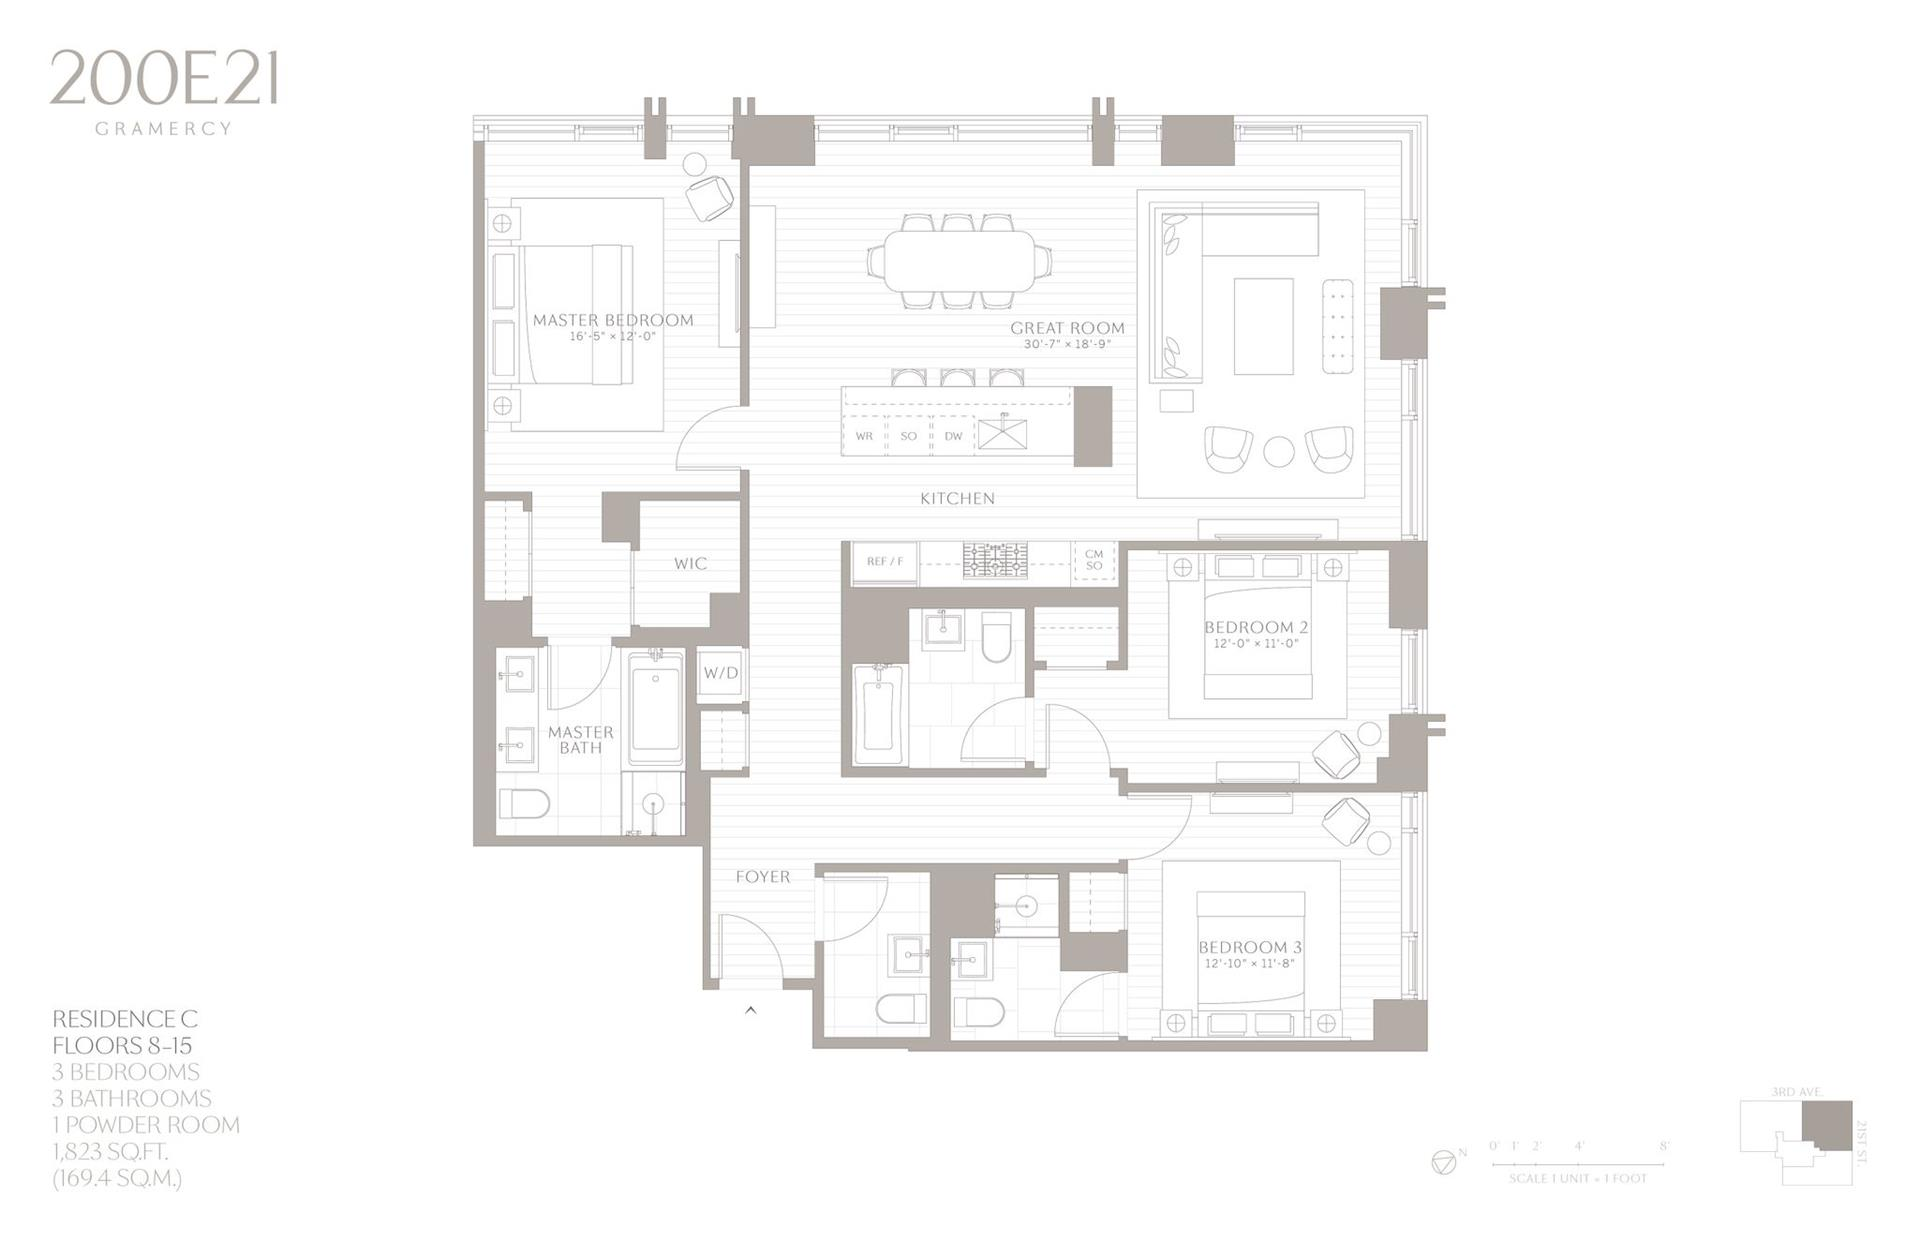 Floor plan of 200 East 21st Street, 10C - Gramercy - Union Square, New York